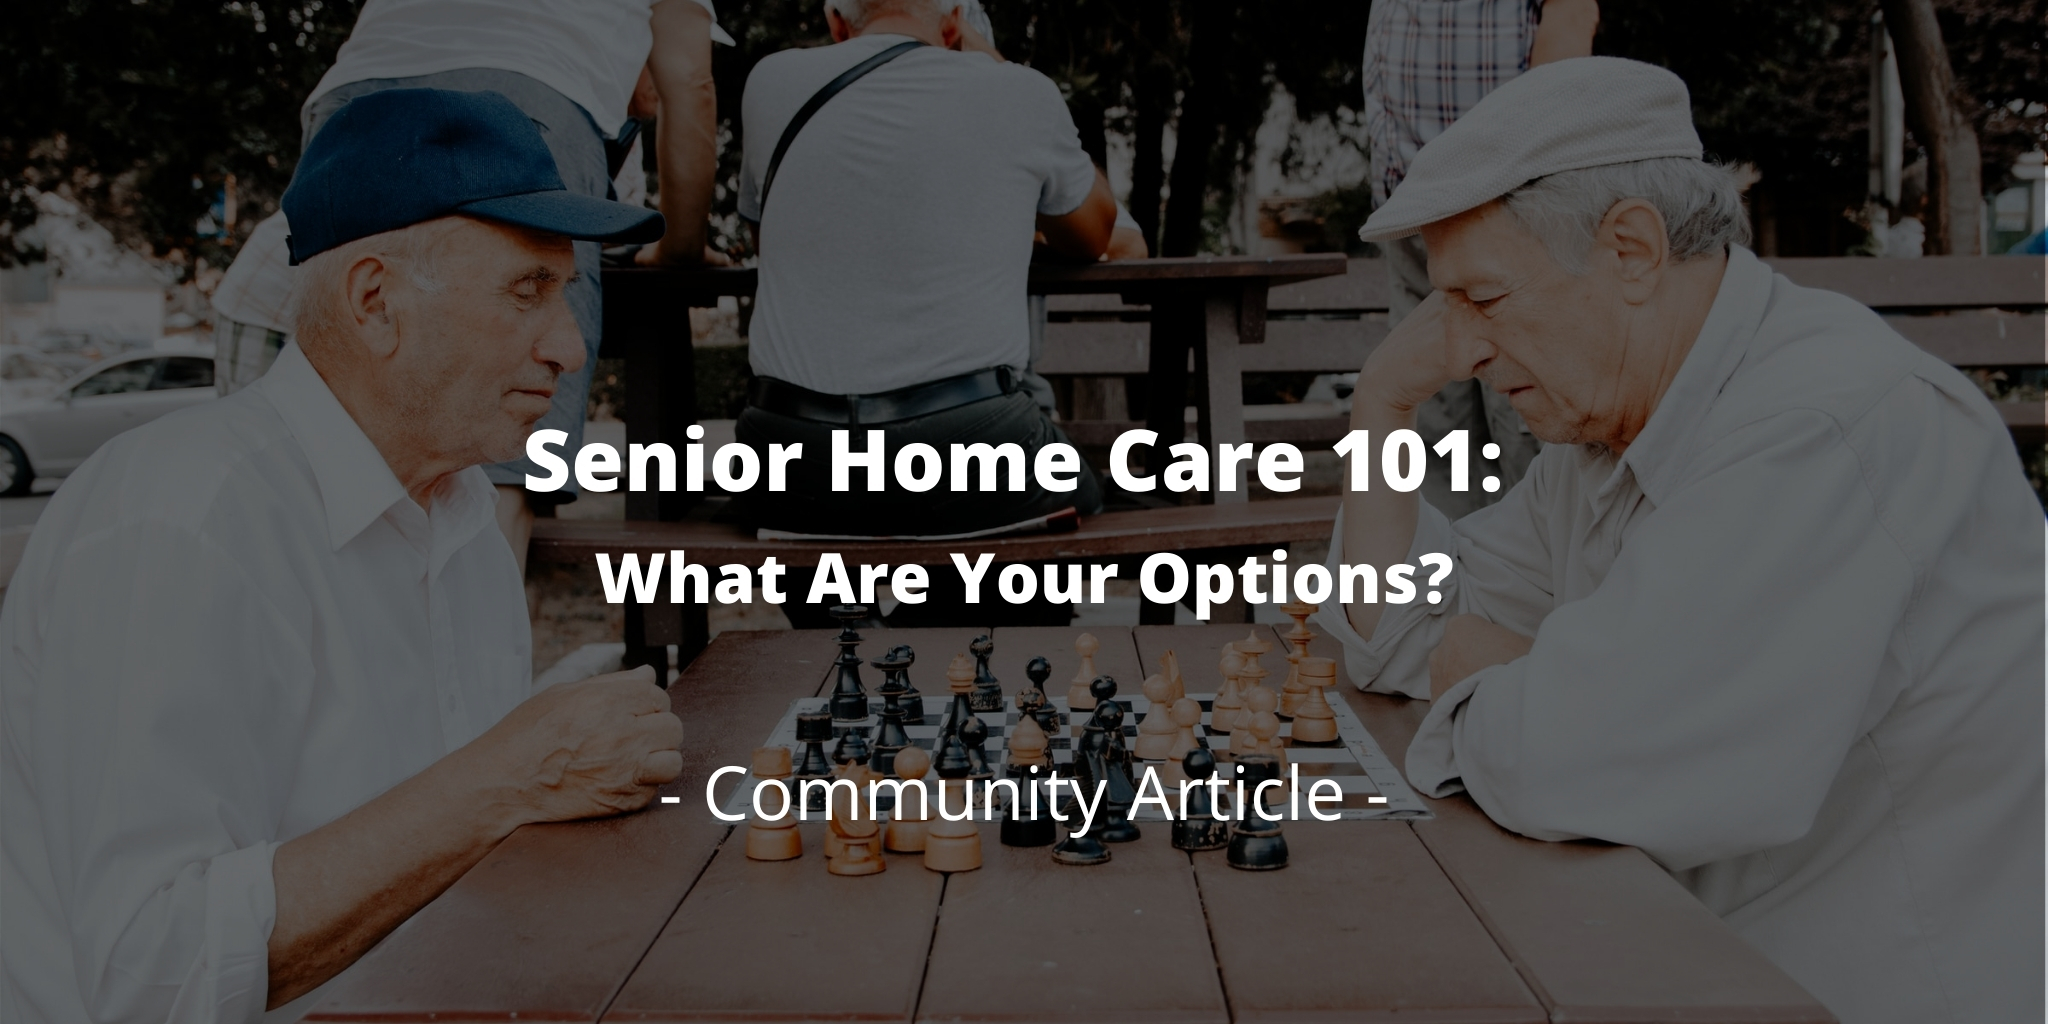 Senior Home Care 101: What Are Your Options?